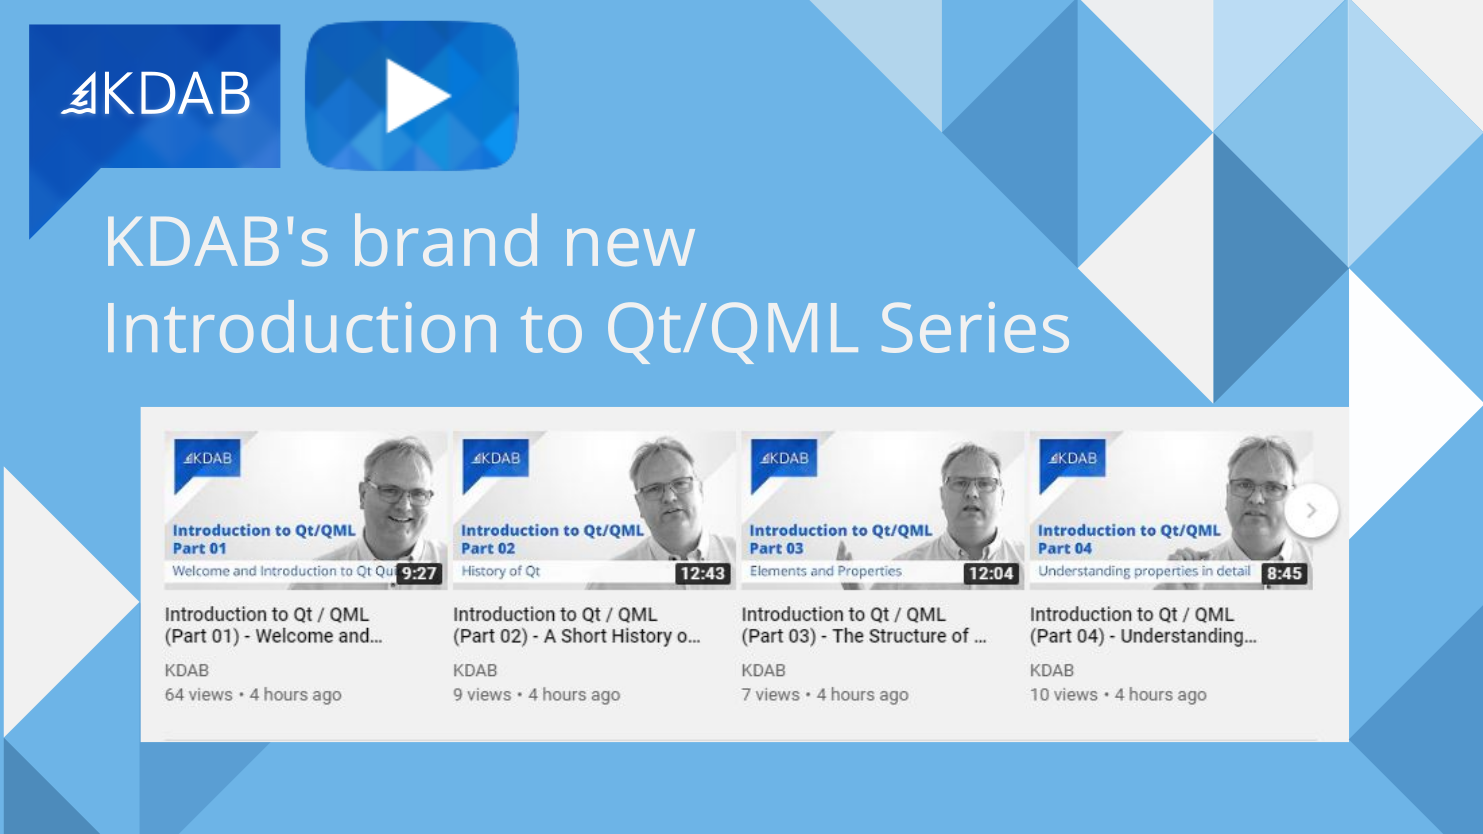 Qt/QML introduction series